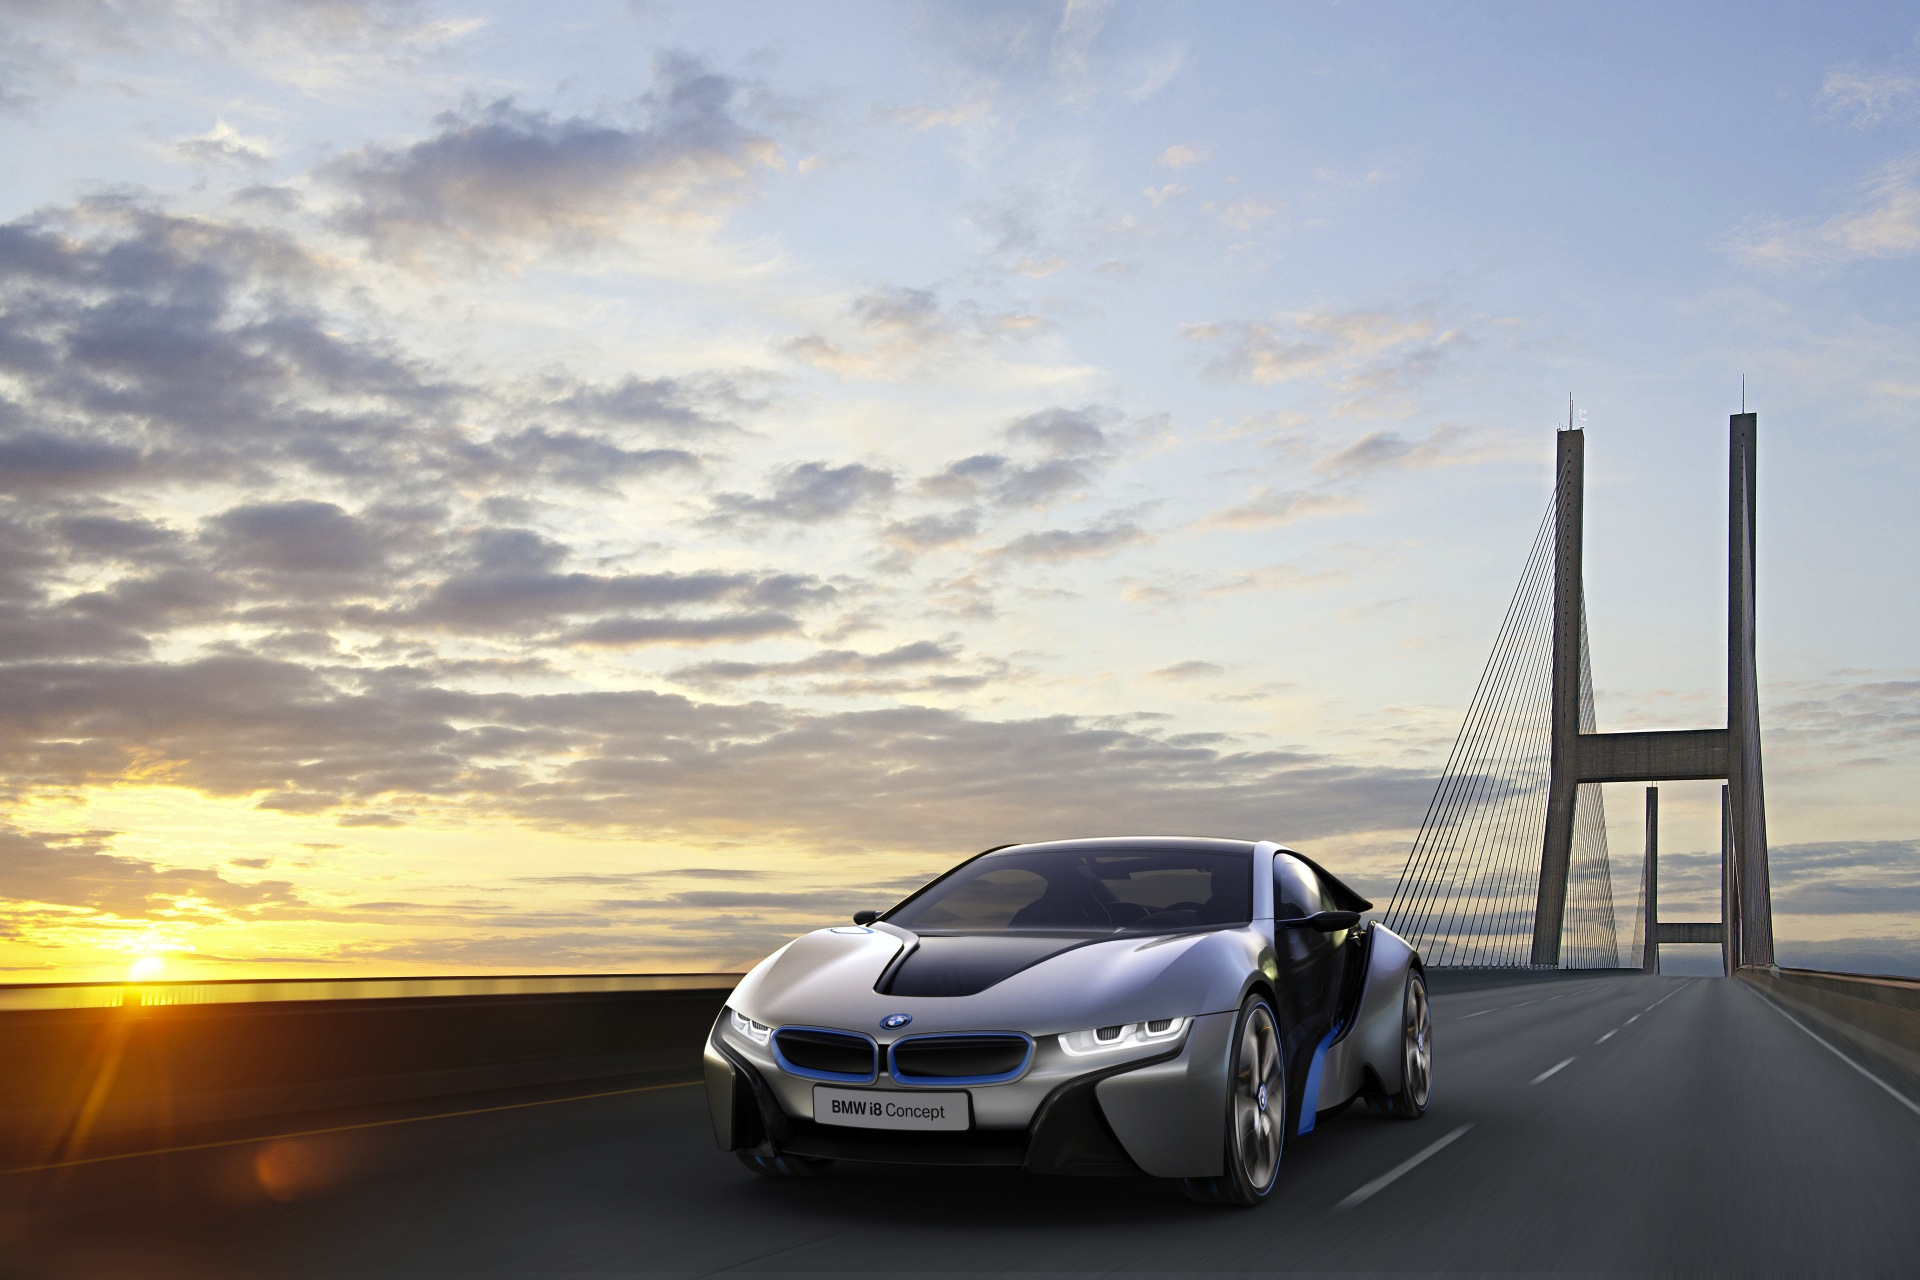 World Debut: BMW i8 Concept 0-60 Under 5 Seconds/78MPG